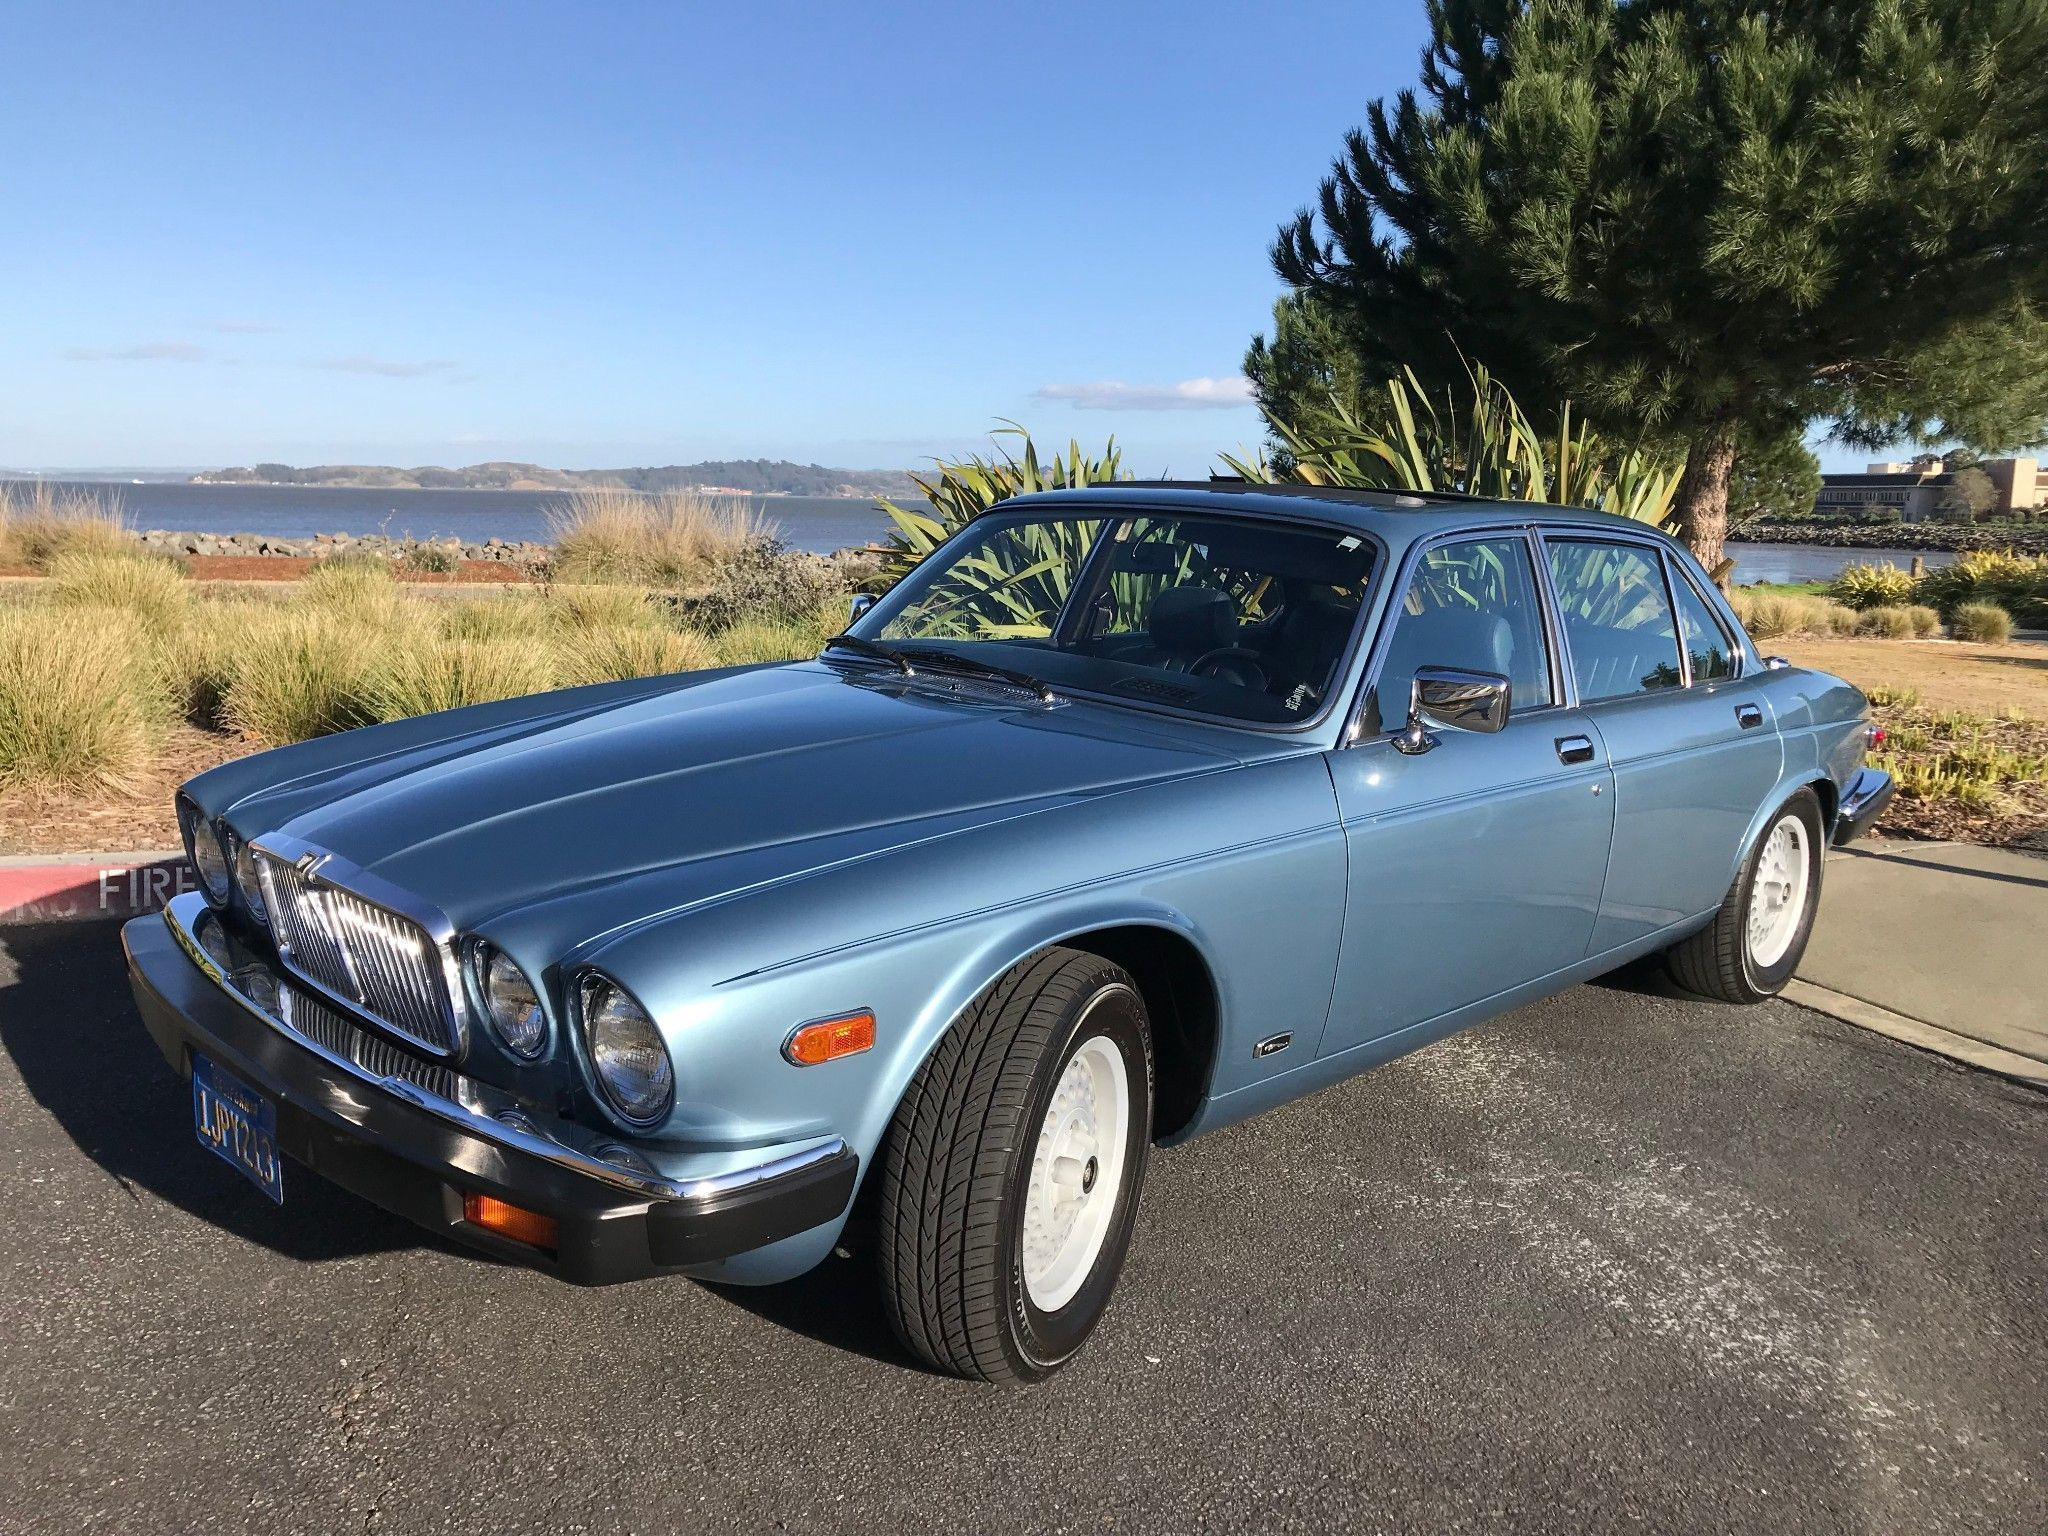 Bid for the chance to own a Jaguar XJ at auction with Bring a